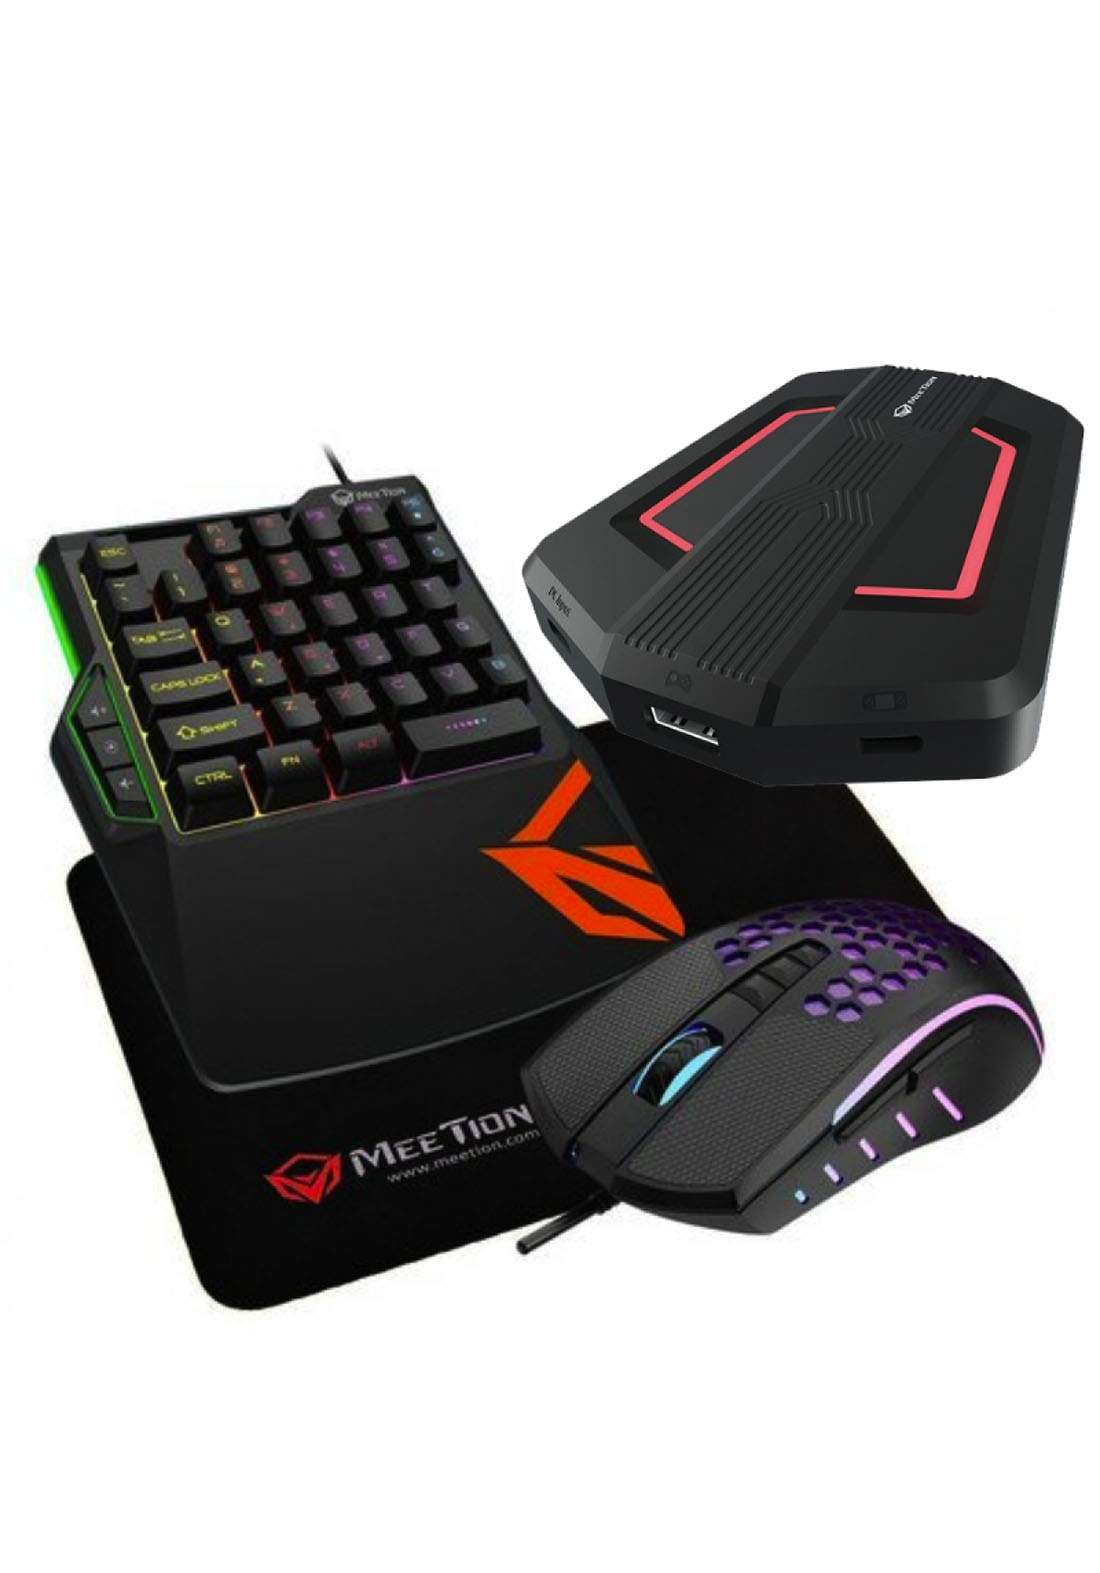 Meetion CO015 Gaming Kit Console Keyboard Mouse Converter - Black